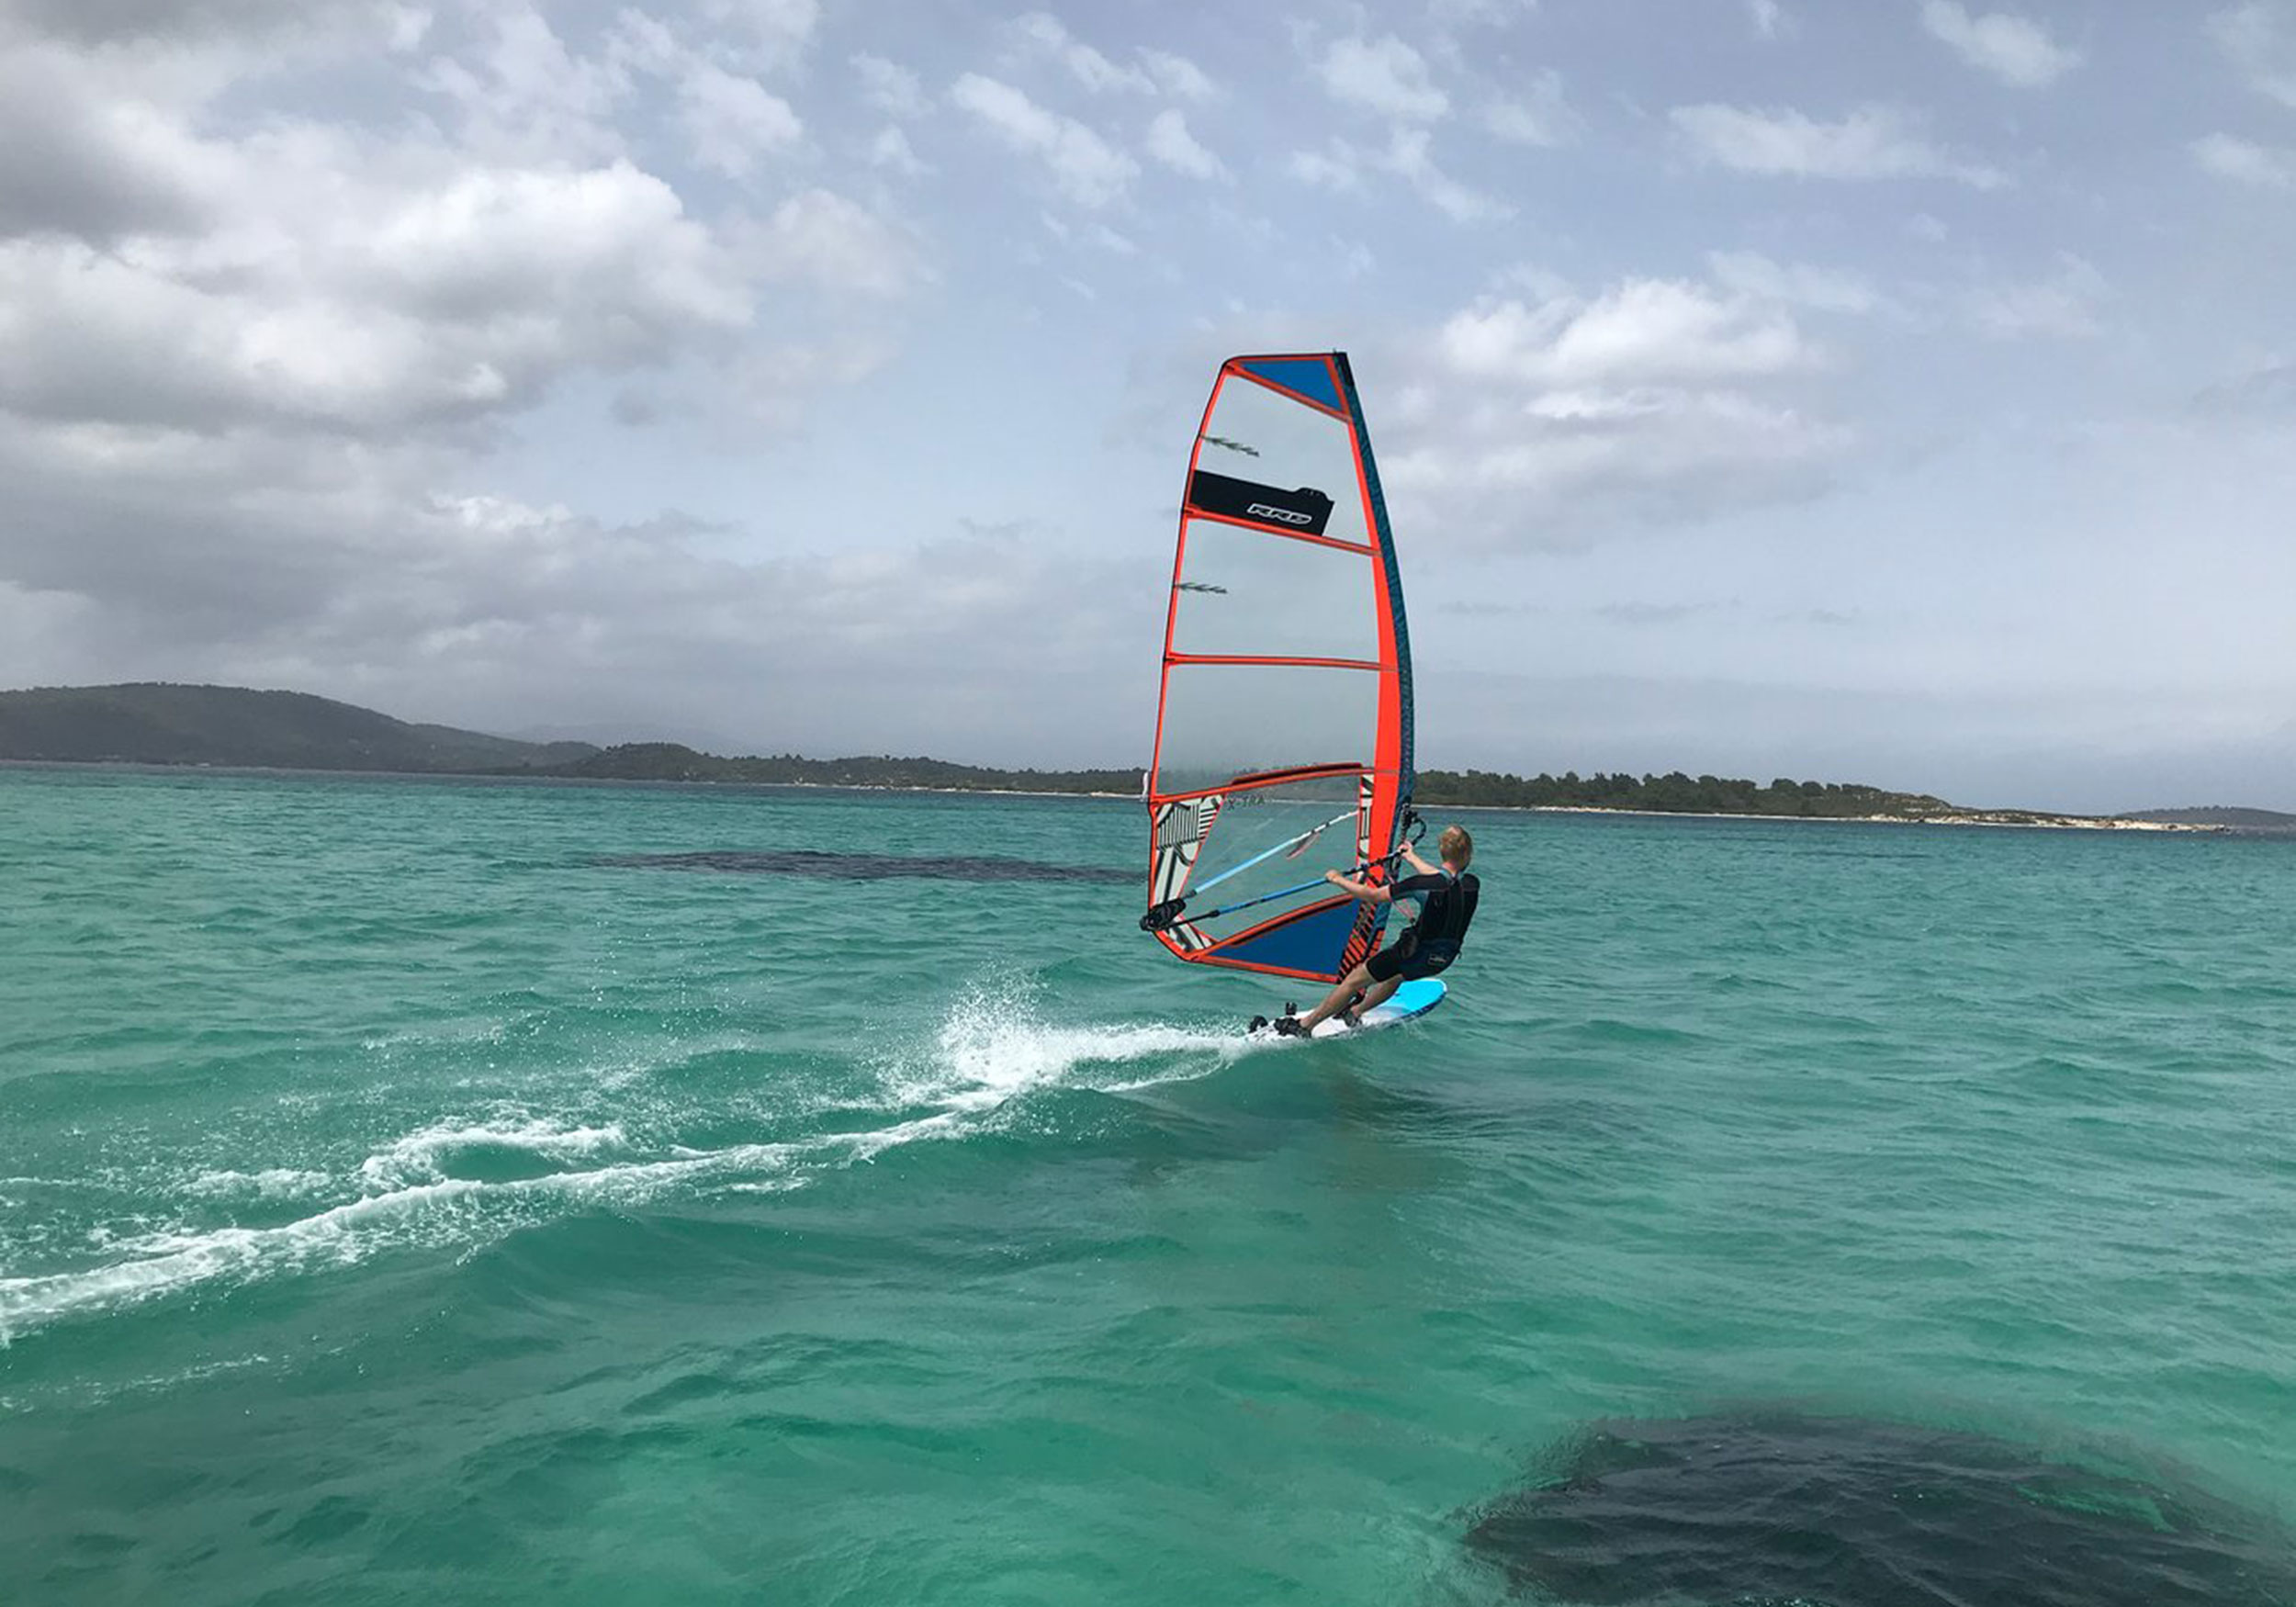 Person windsurfing on a windy day